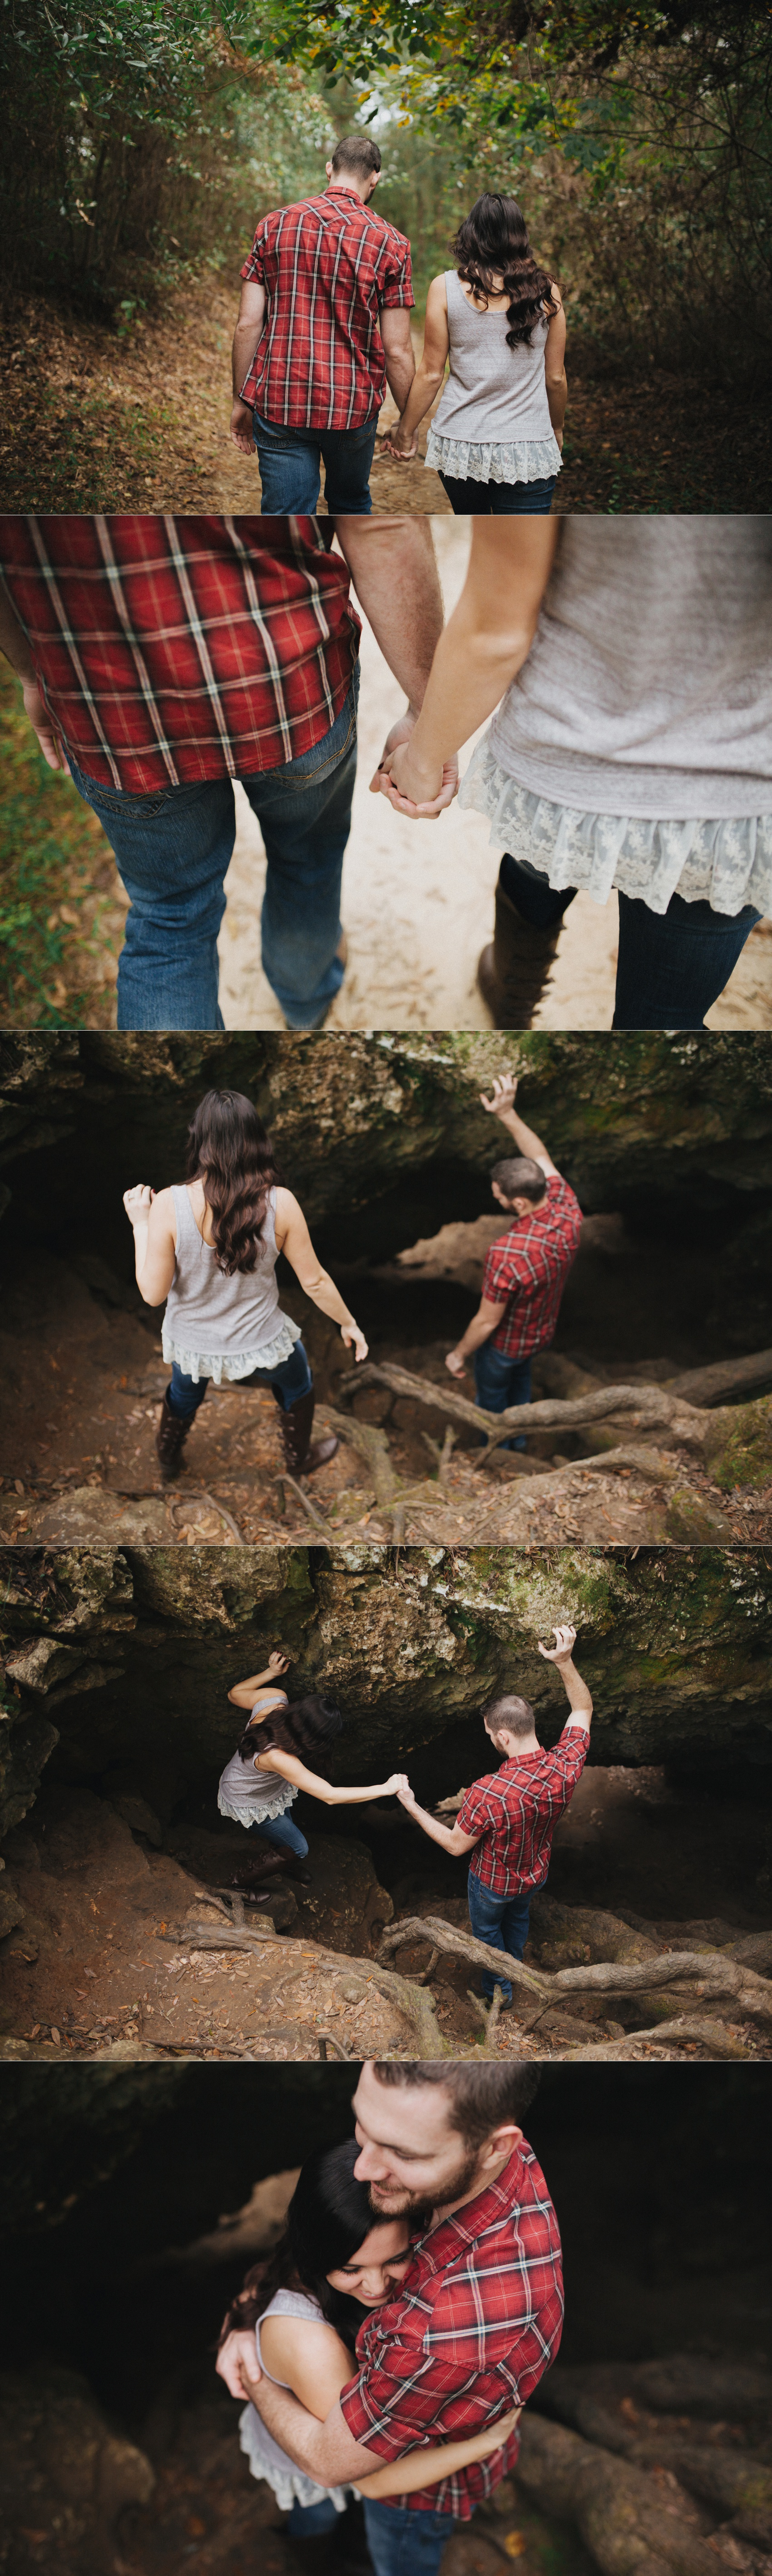 tampa outdoor hiking cave engagement session-1